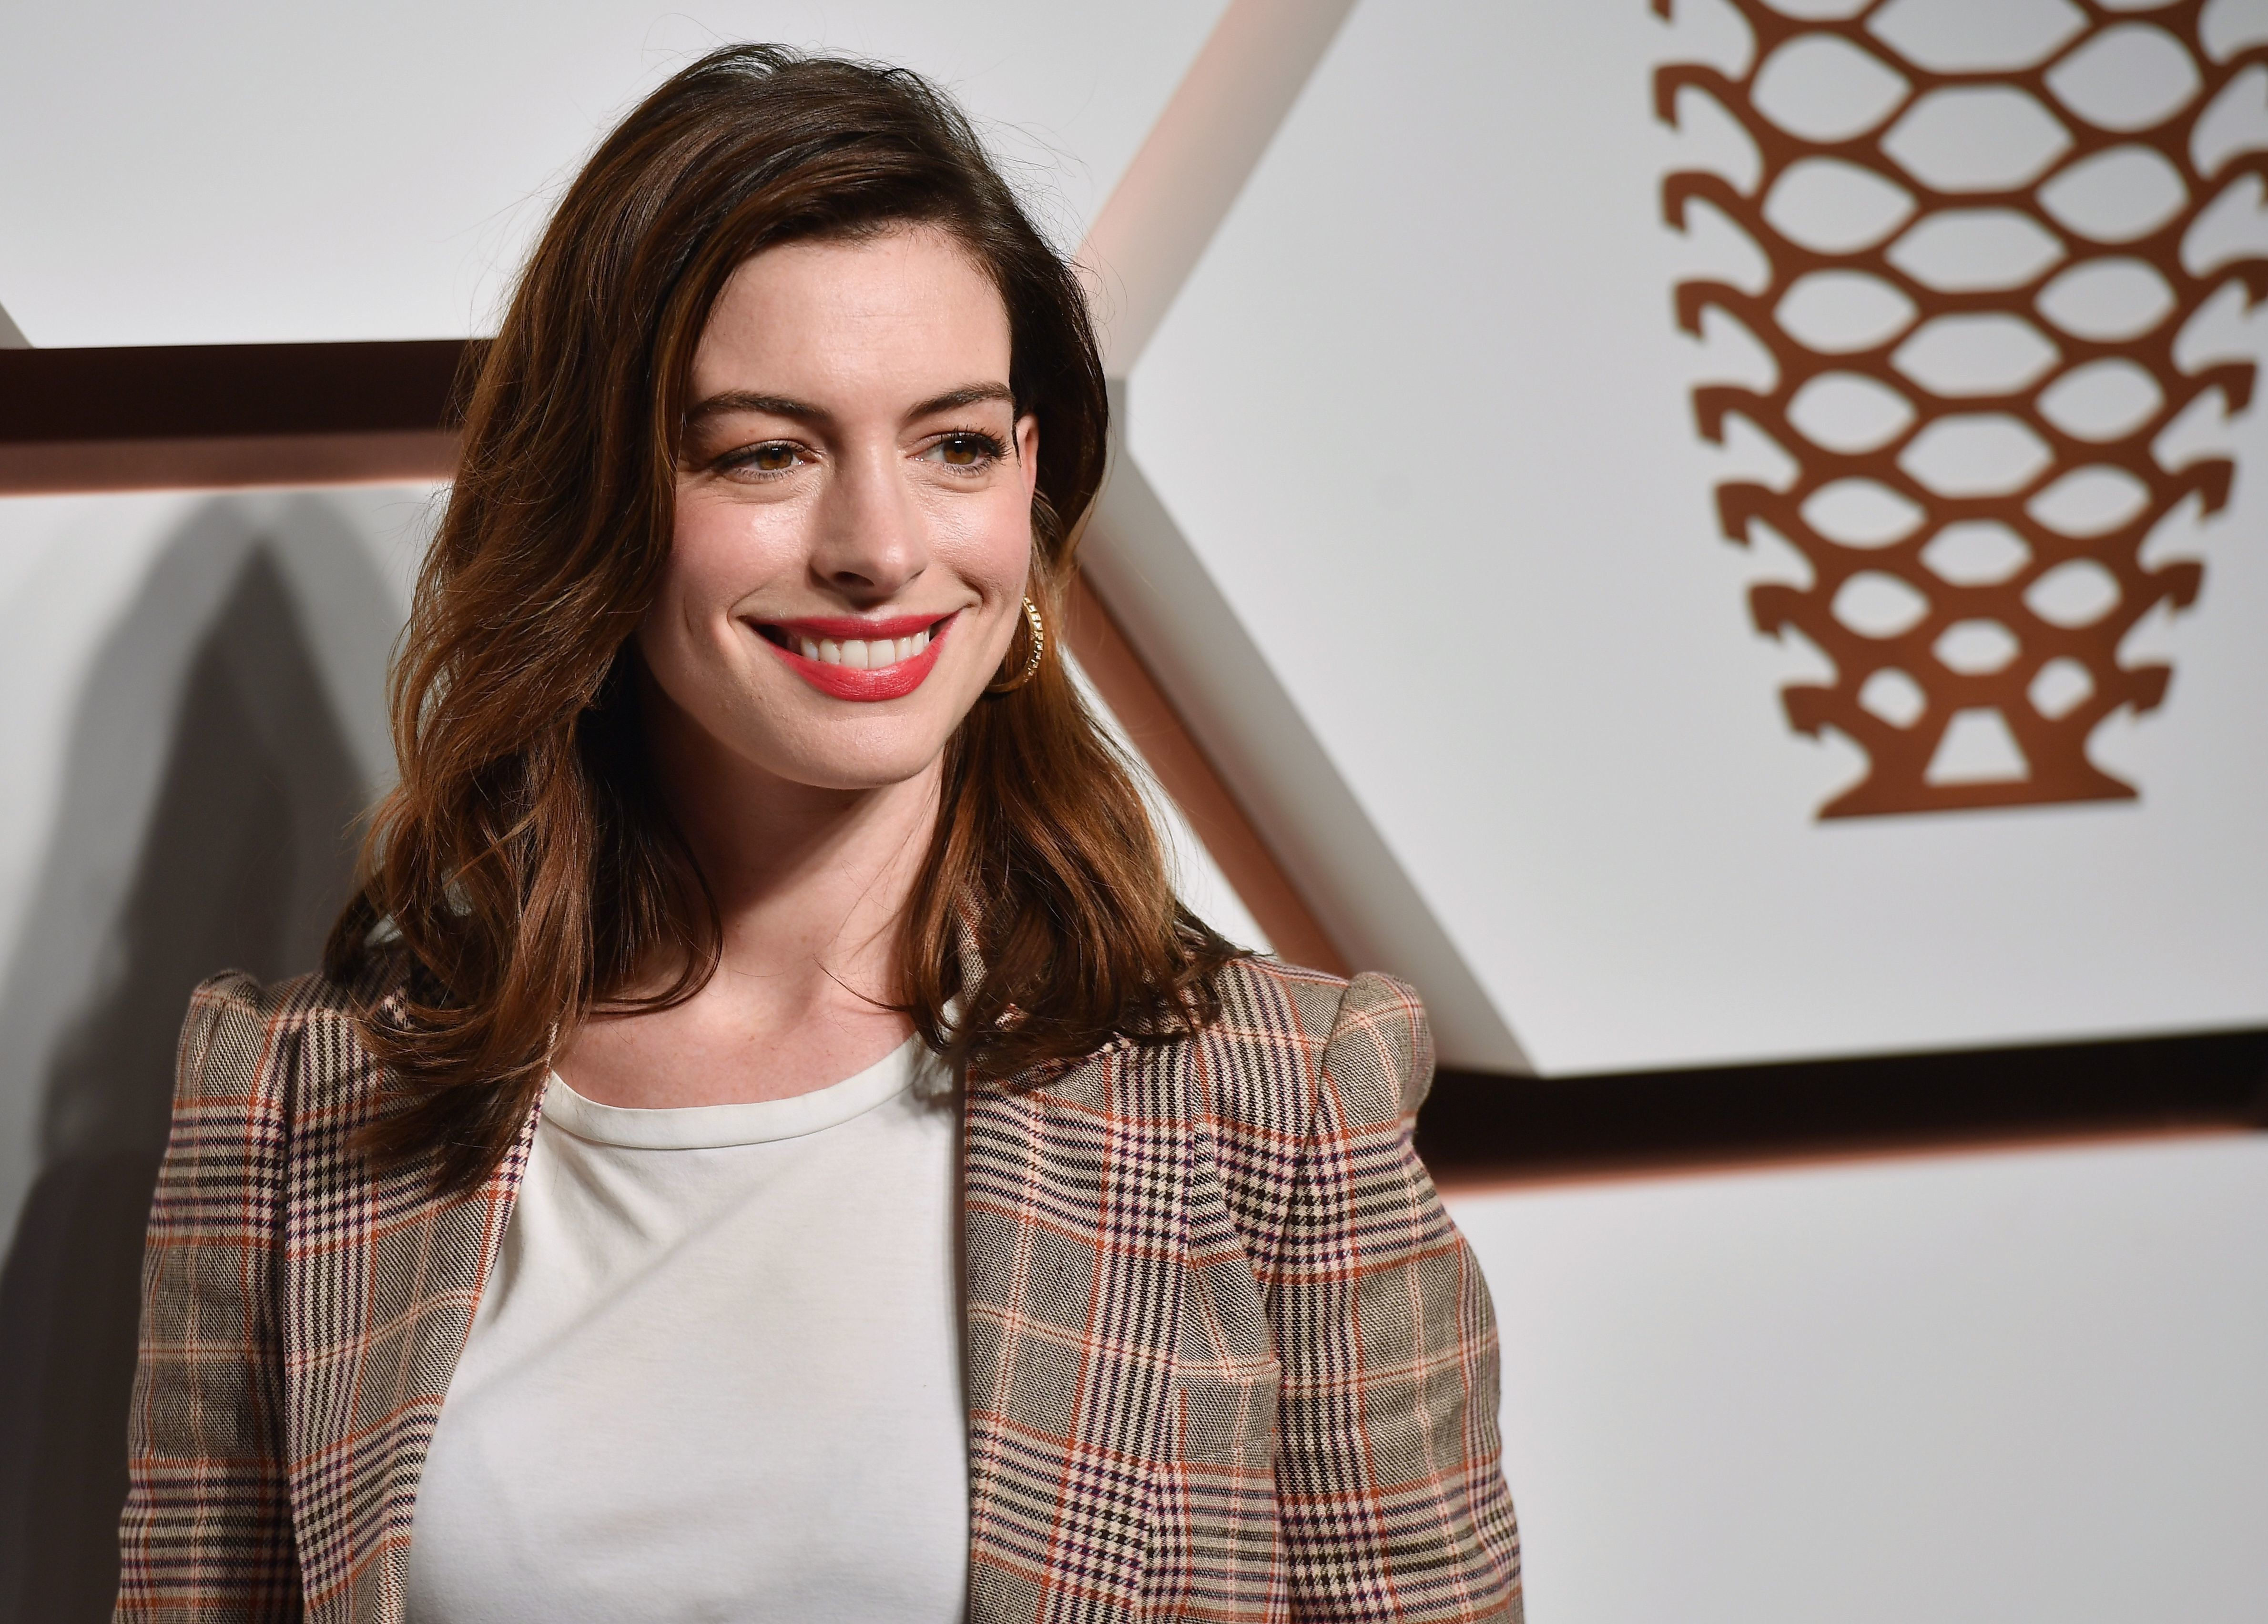 US actress Anne Hathaway attends The Shops & Restaurants at Hudson Yards Preview Celebration Event on March 14, 2019 in New York City. (Photo by Angela Weiss / AFP)        (Photo credit should read ANGELA WEISS/AFP/Getty Images)